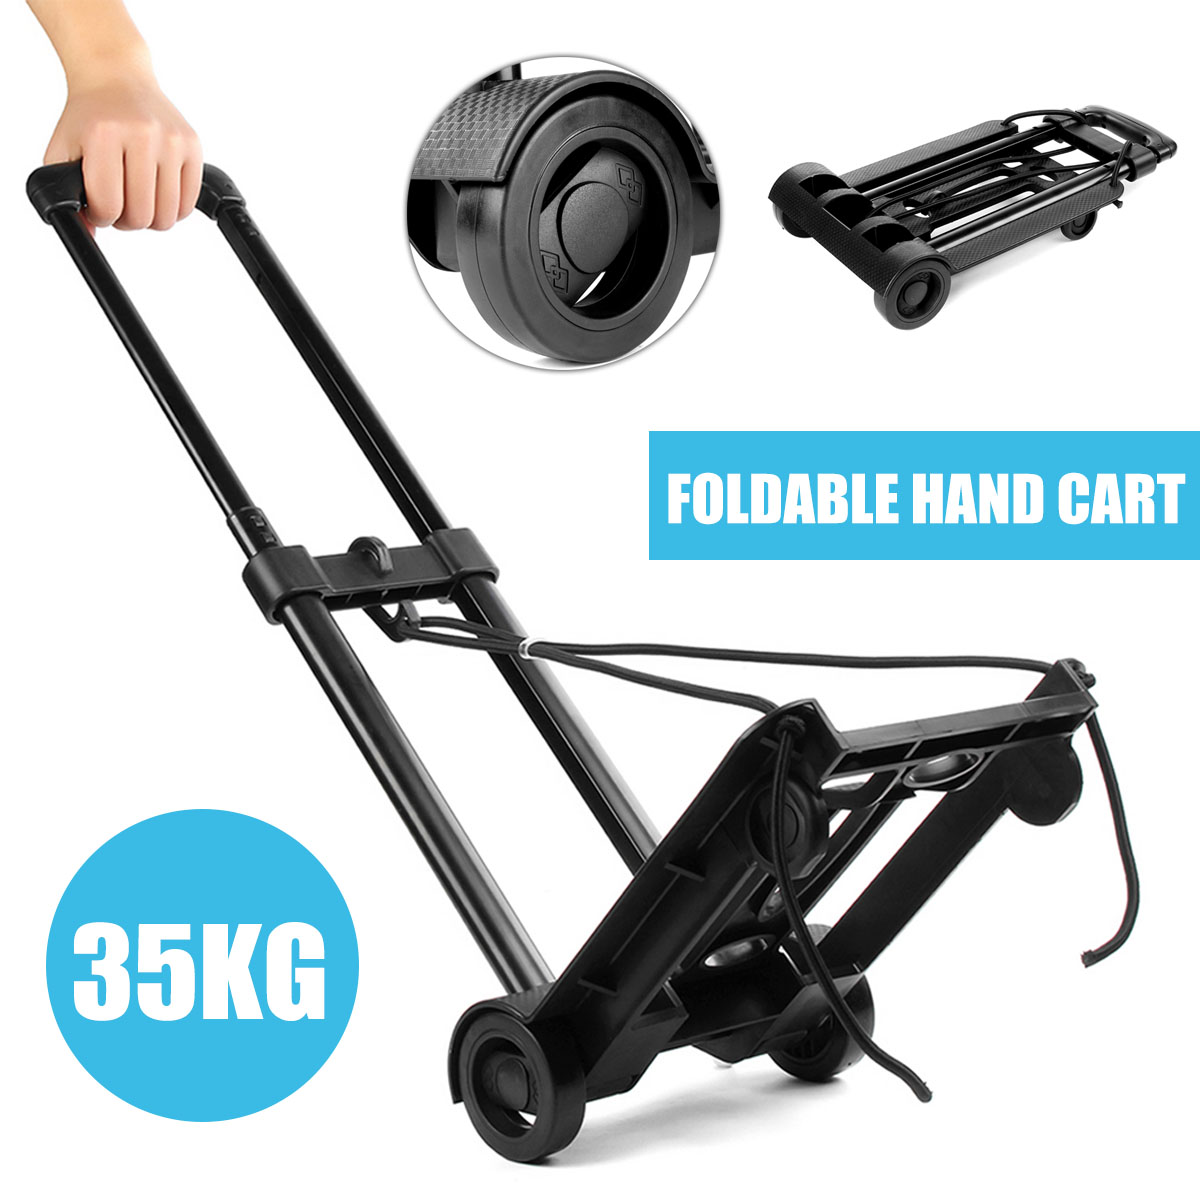 35KG Adjustable Hand Luguagge Trolley Cart With Wheel Folding Handcart Metal Warehouse Sack Height Home Shopping Travel Truck